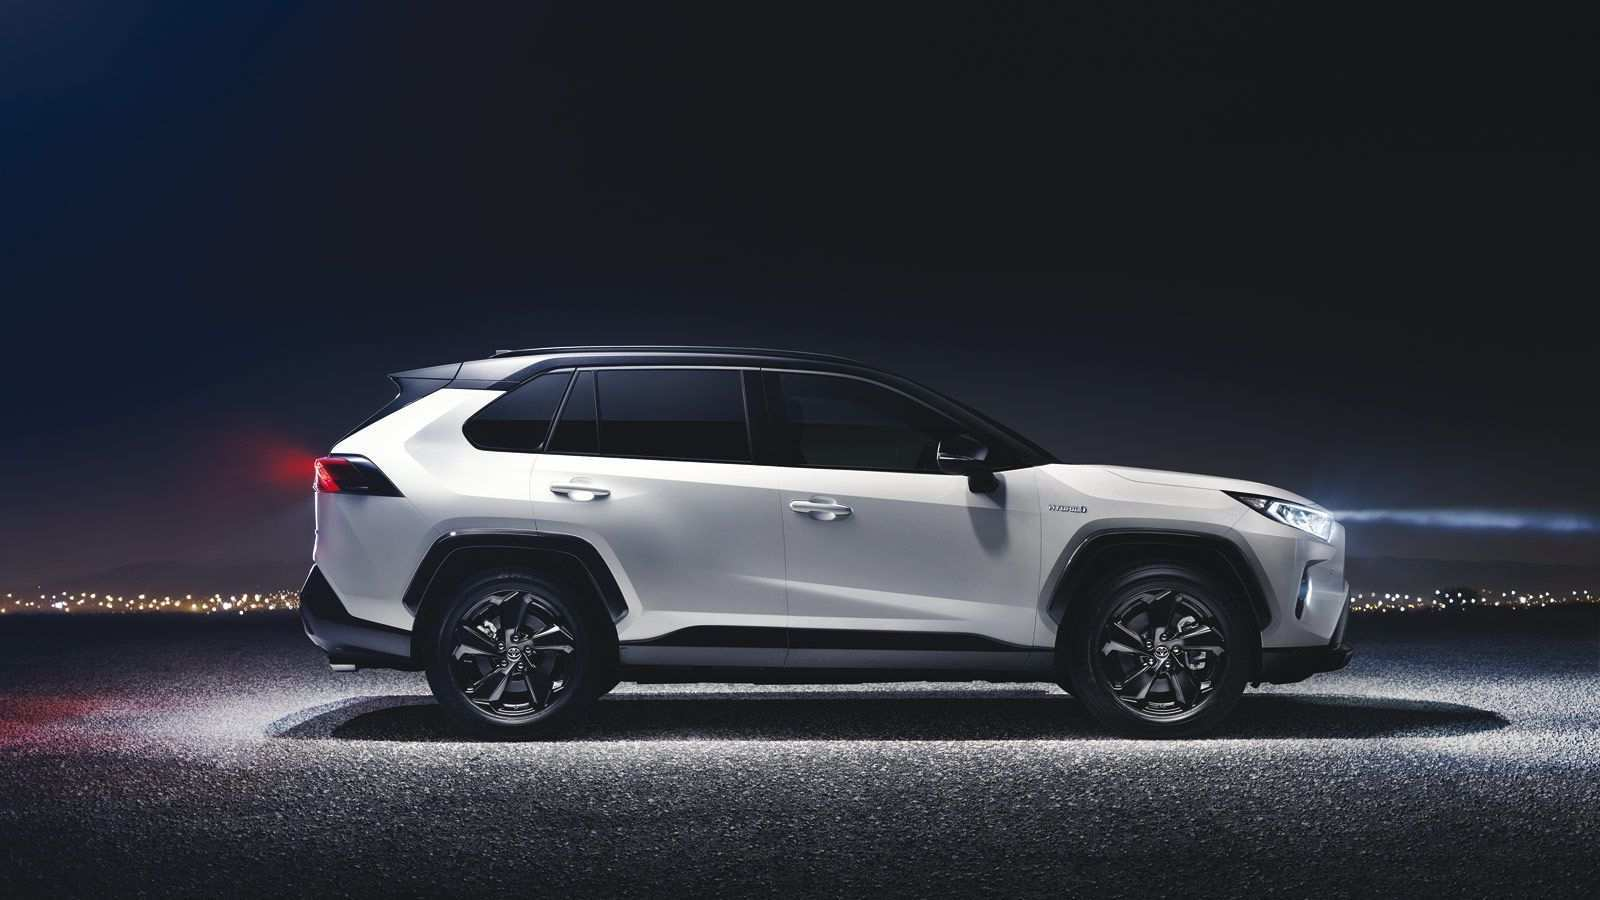 72 The Best 2019 Toyota Build And Price Release Date And Concept